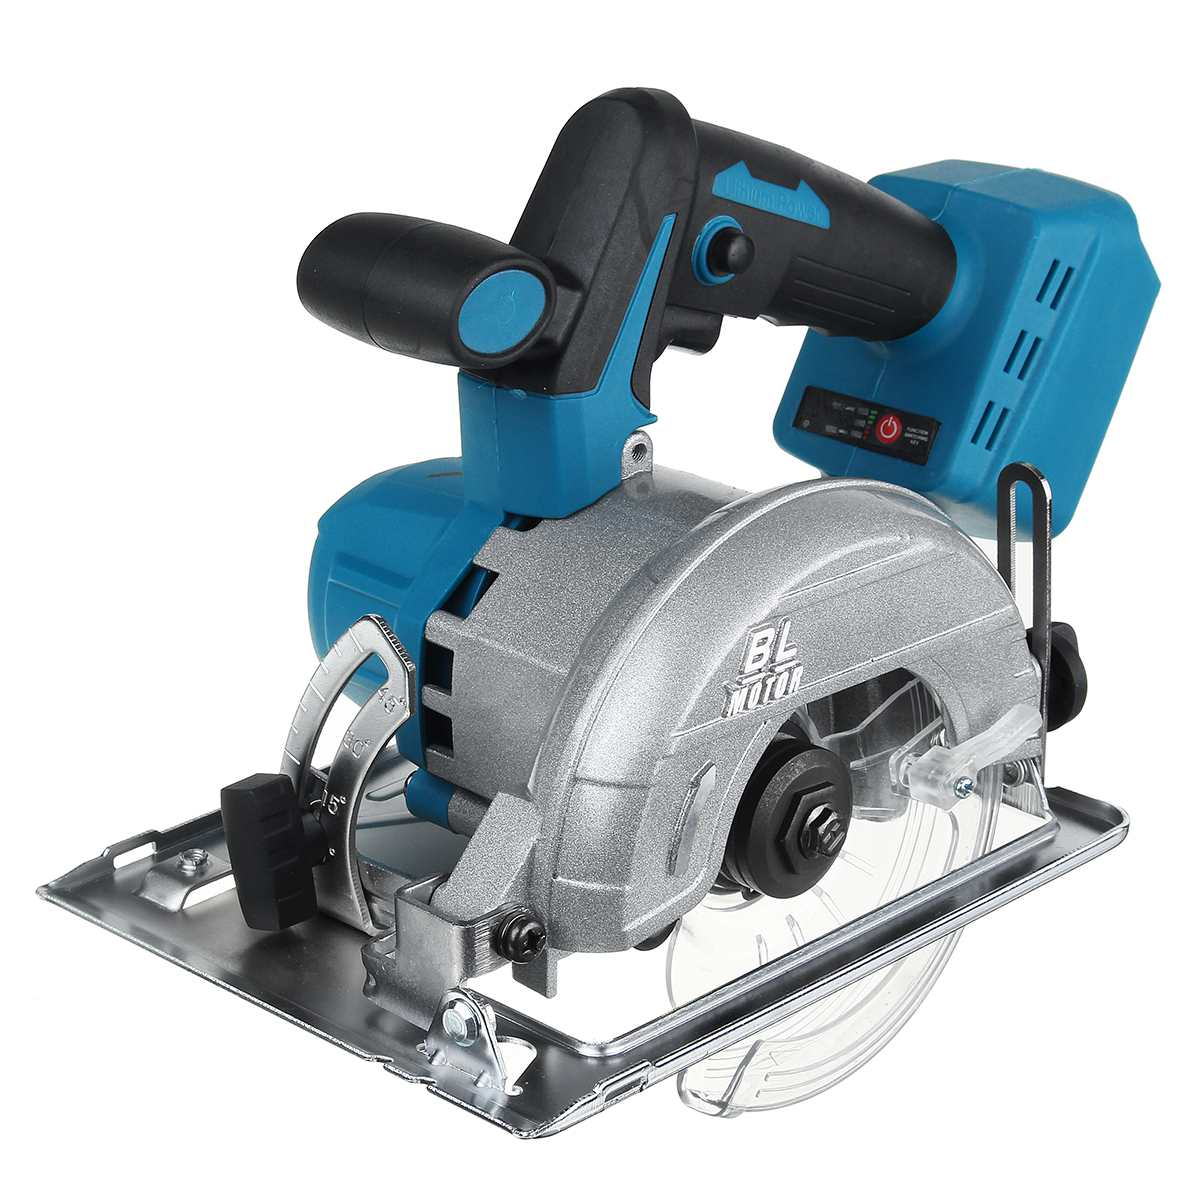 10800RPM 125mm Cordless Electric Wood Circular Saw Power Tools Dust Passage Multifunction Cutting Machine For 18V Makita Battery